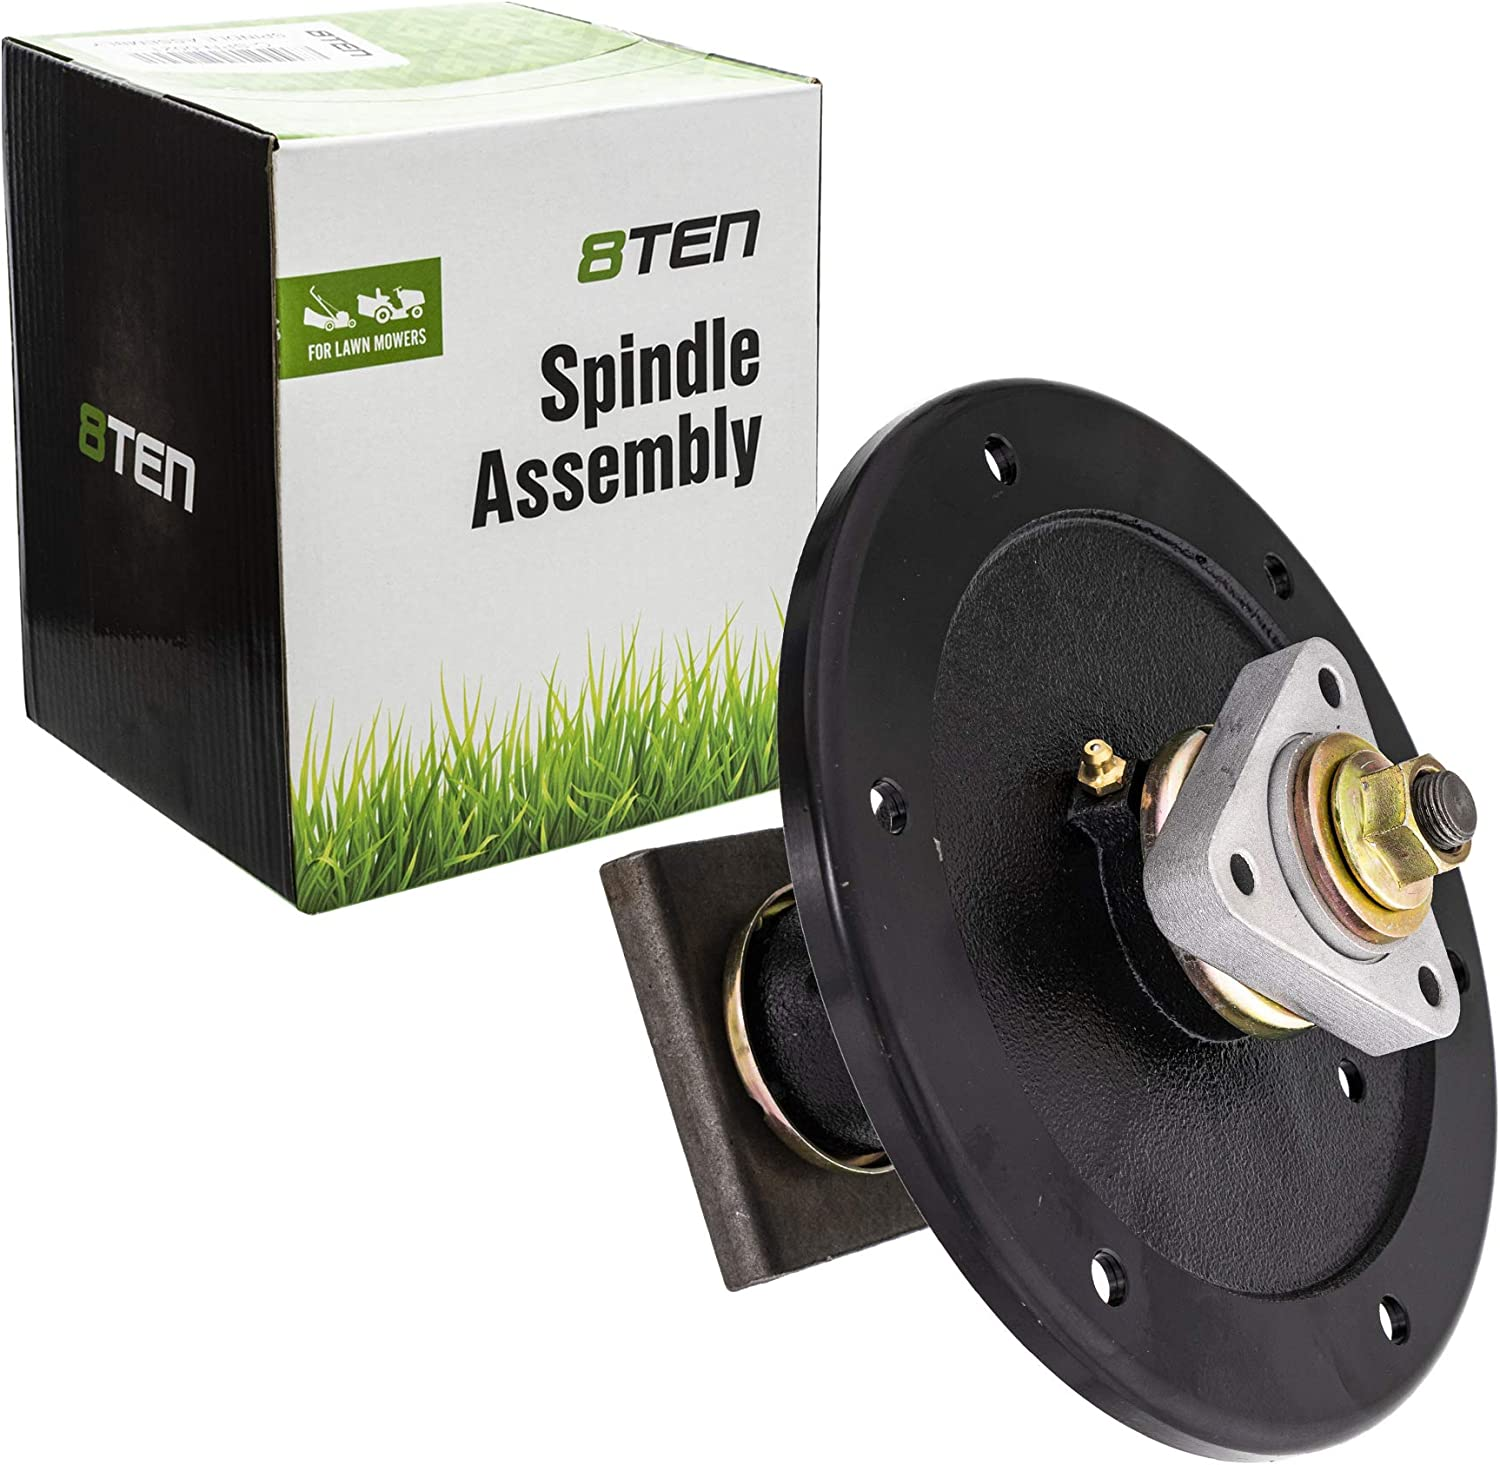 Toro Spindle Assembly for Toro 100-3976 Fits 52 Z models